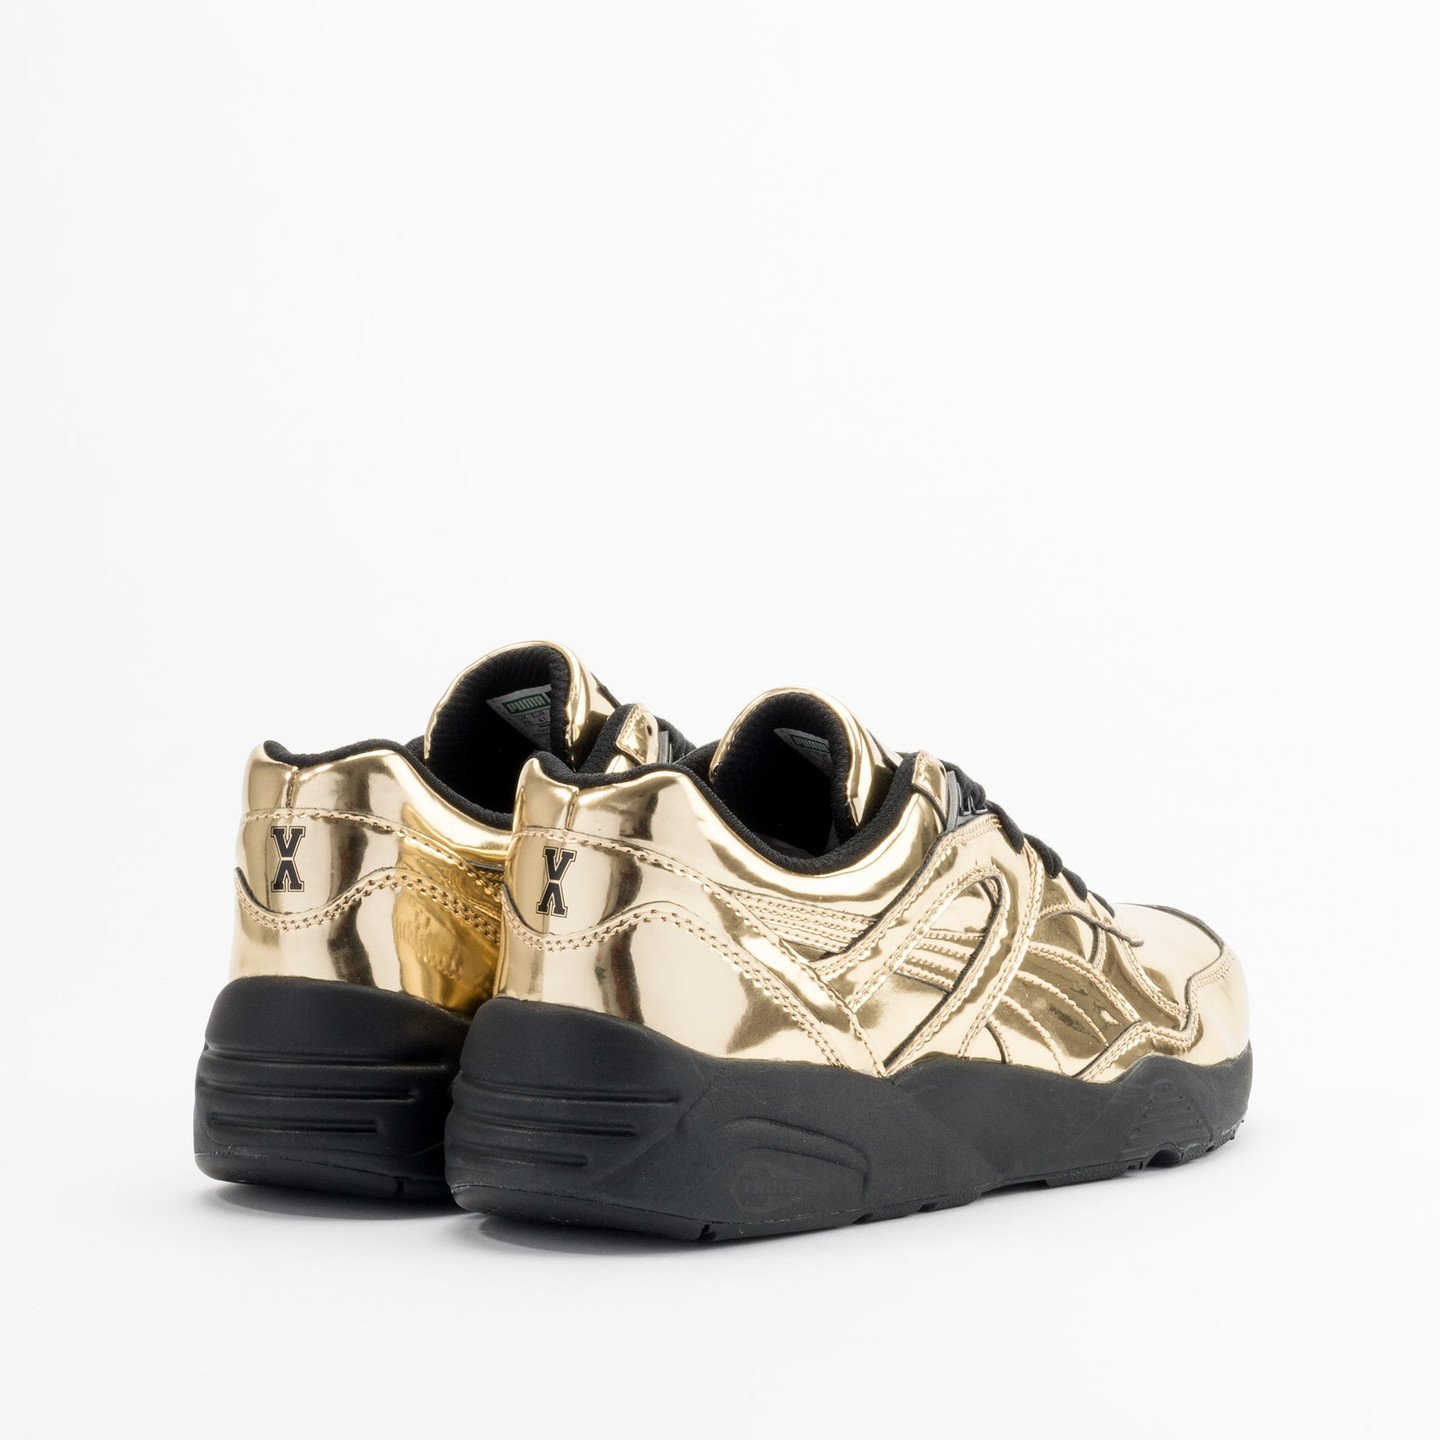 Puma R698 x Vashtie Gold Metallic Gold / Black 358838 01